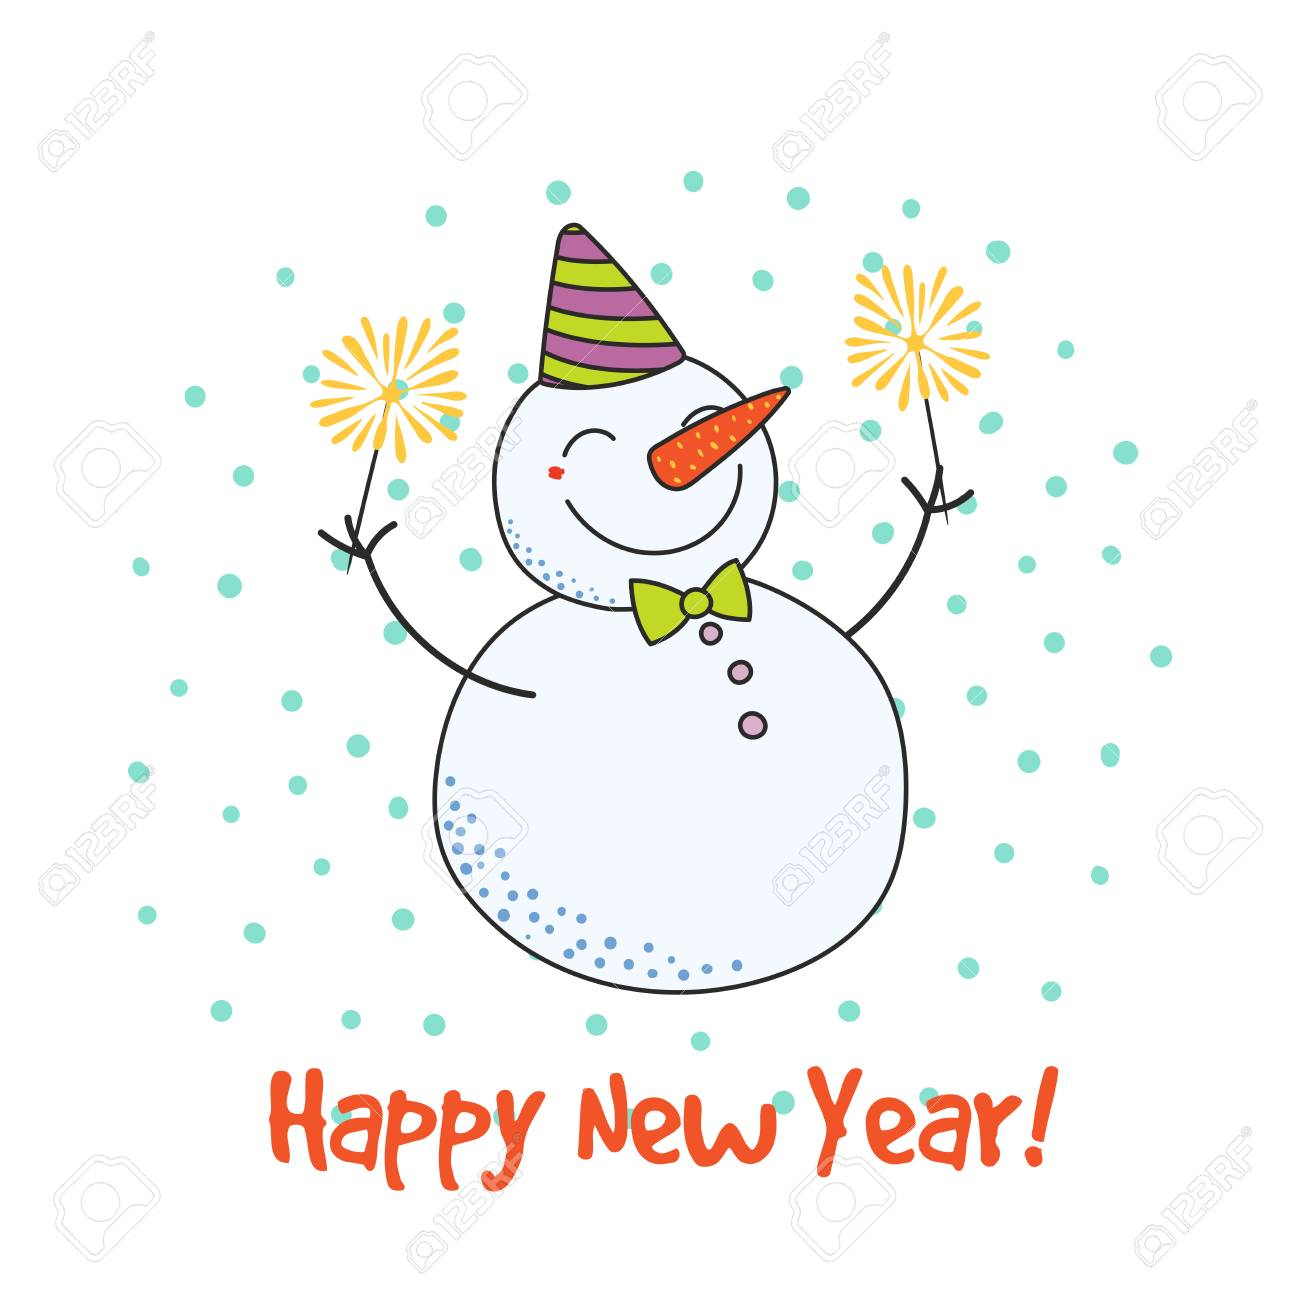 Hand drawn Happy New Year greeting card with cute funny cartoon...